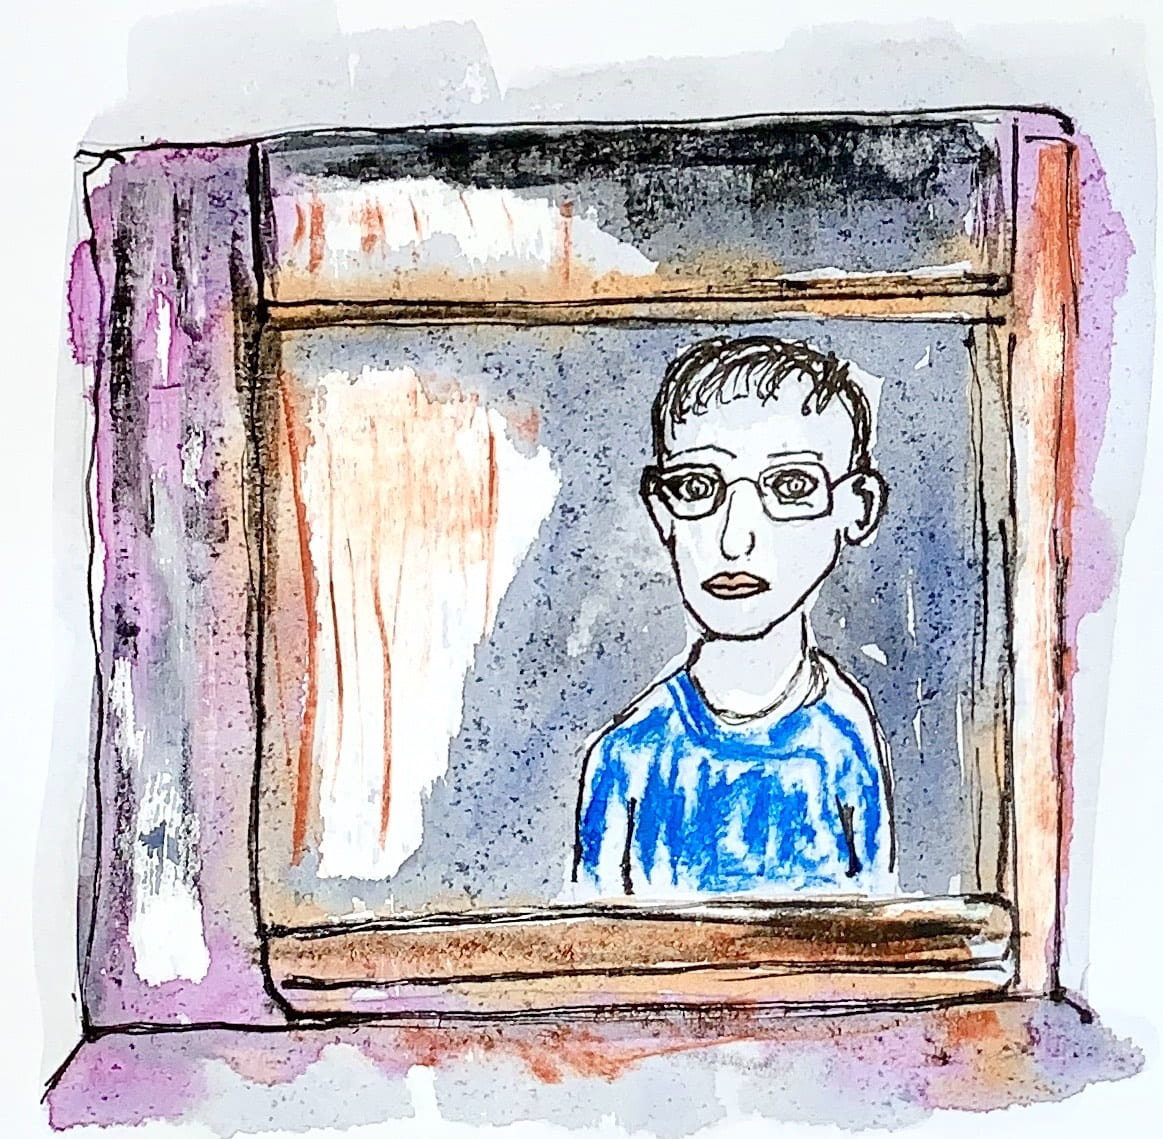 Boy looking out of window